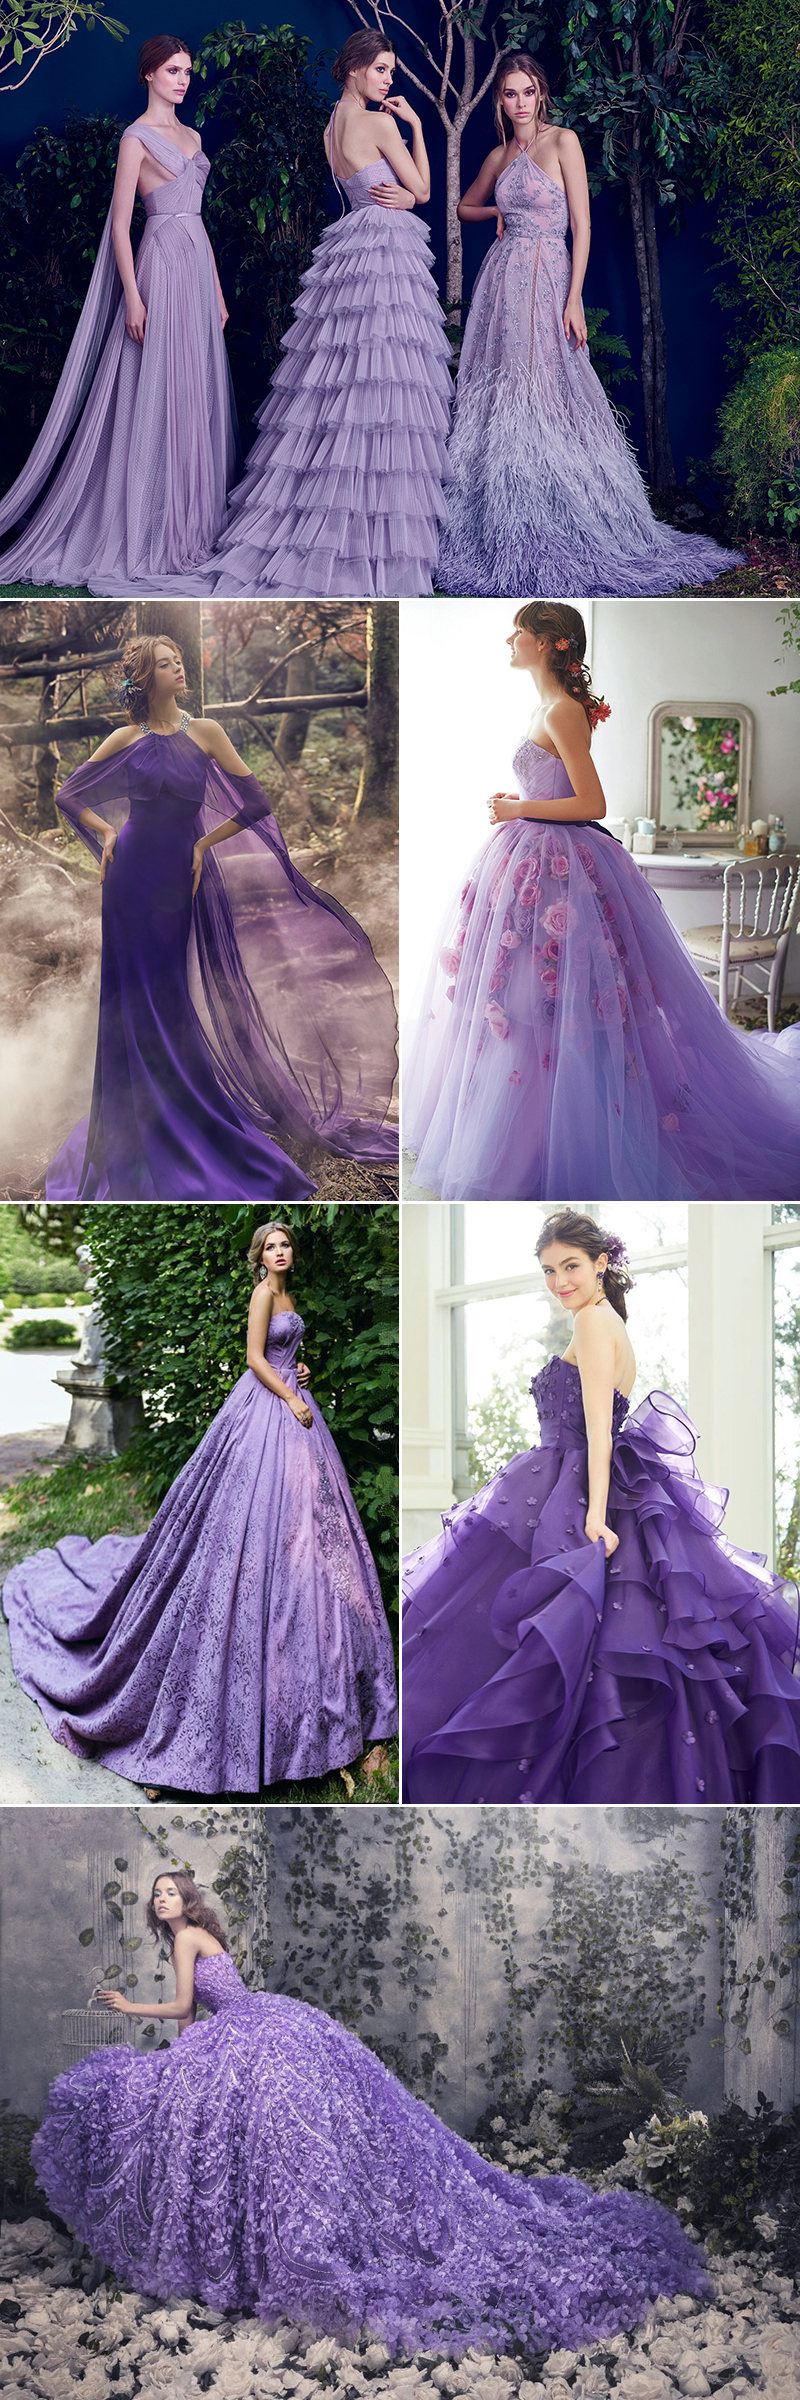 10 Beautiful Purple Wedding Gowns For Modern Romantic Brides